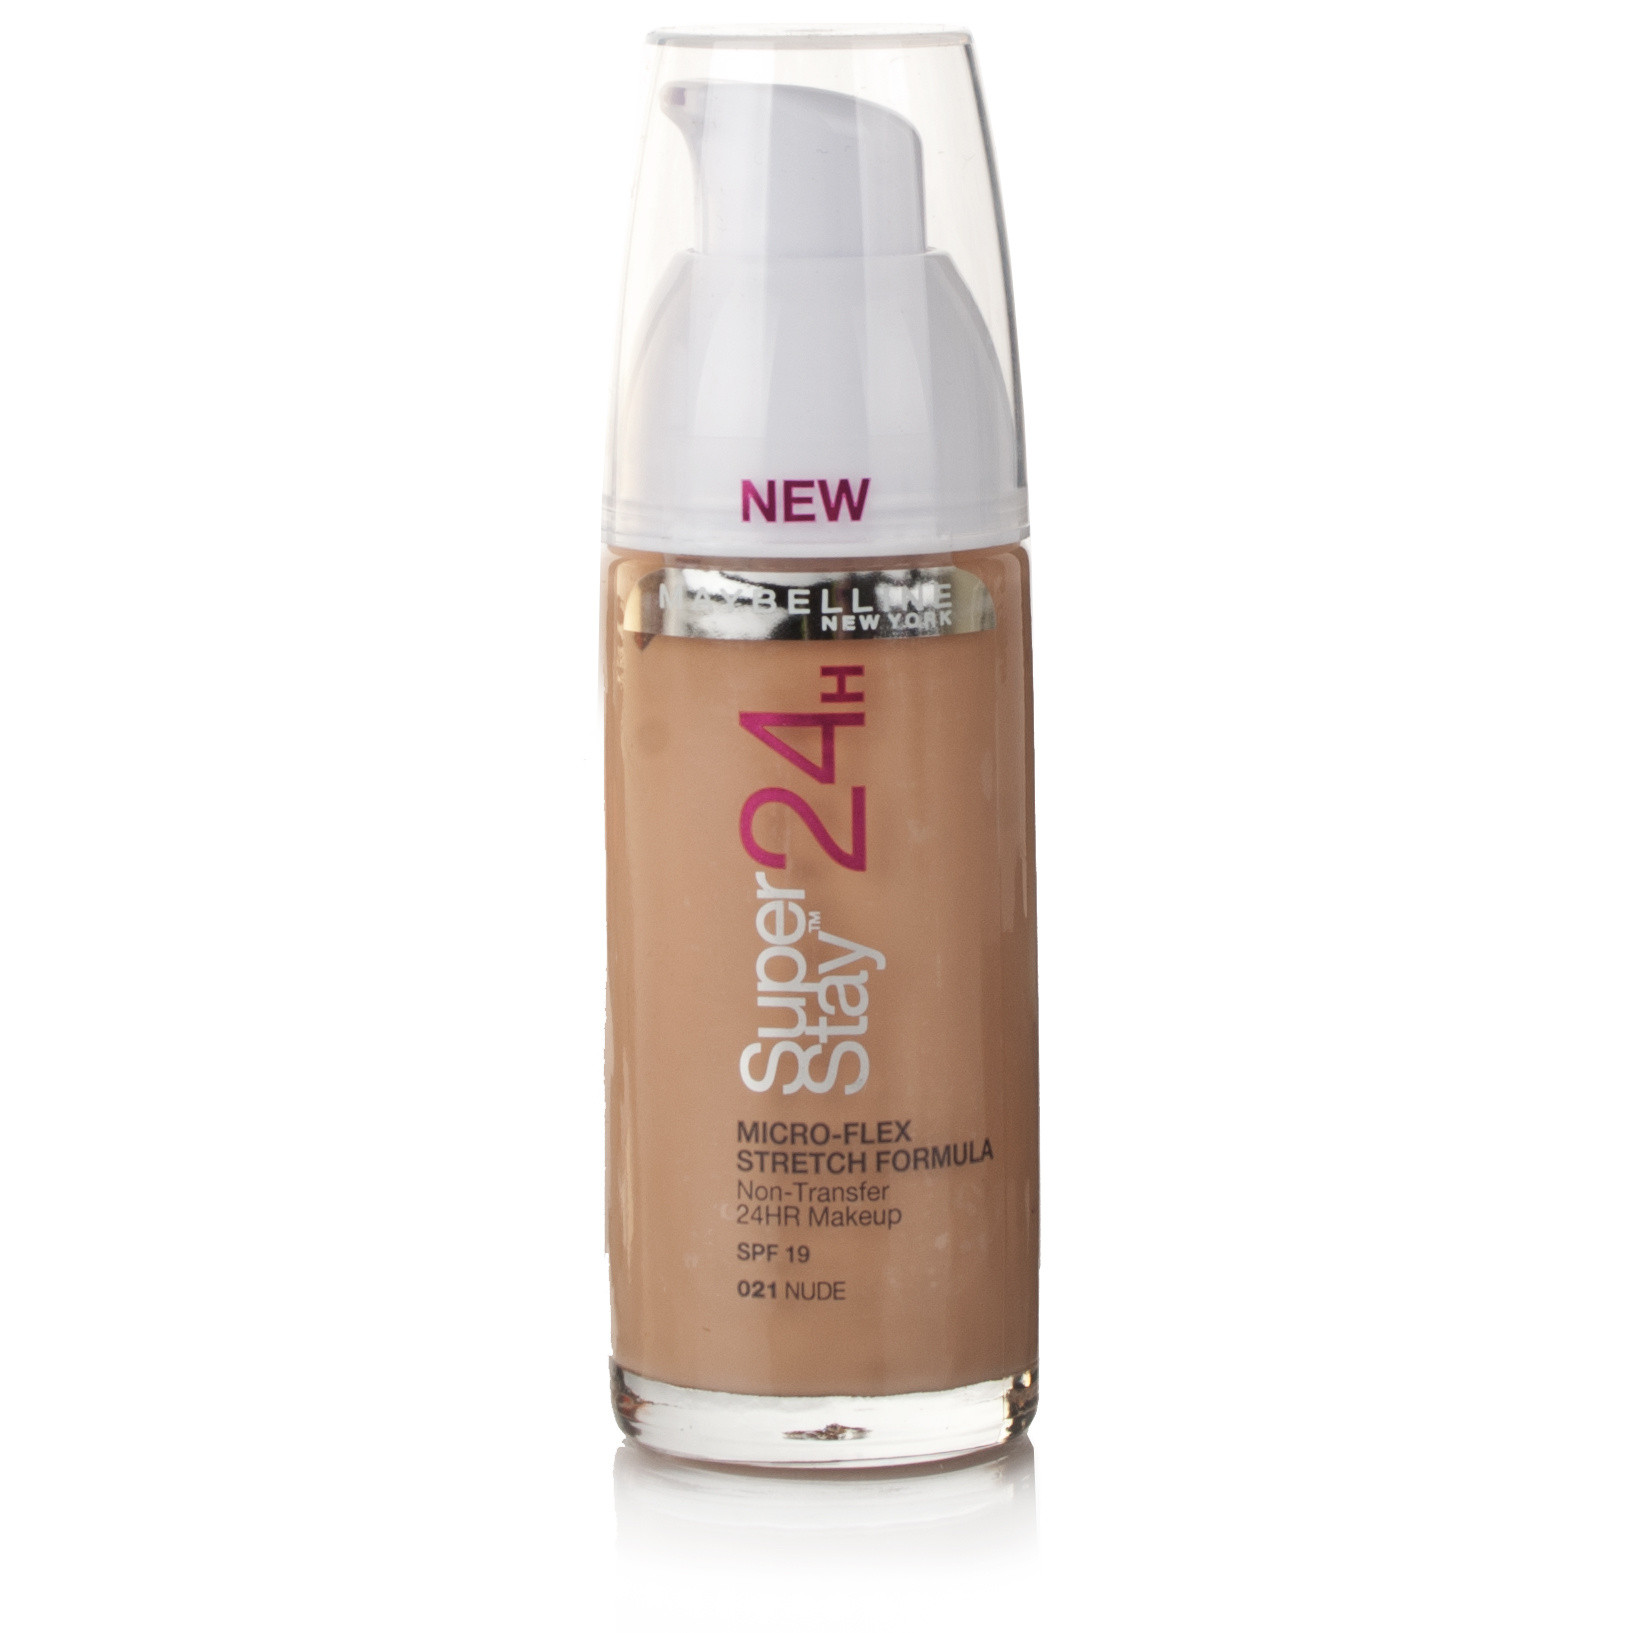 Maybelline New Superstay 24hr Foundation Nude Beige 21